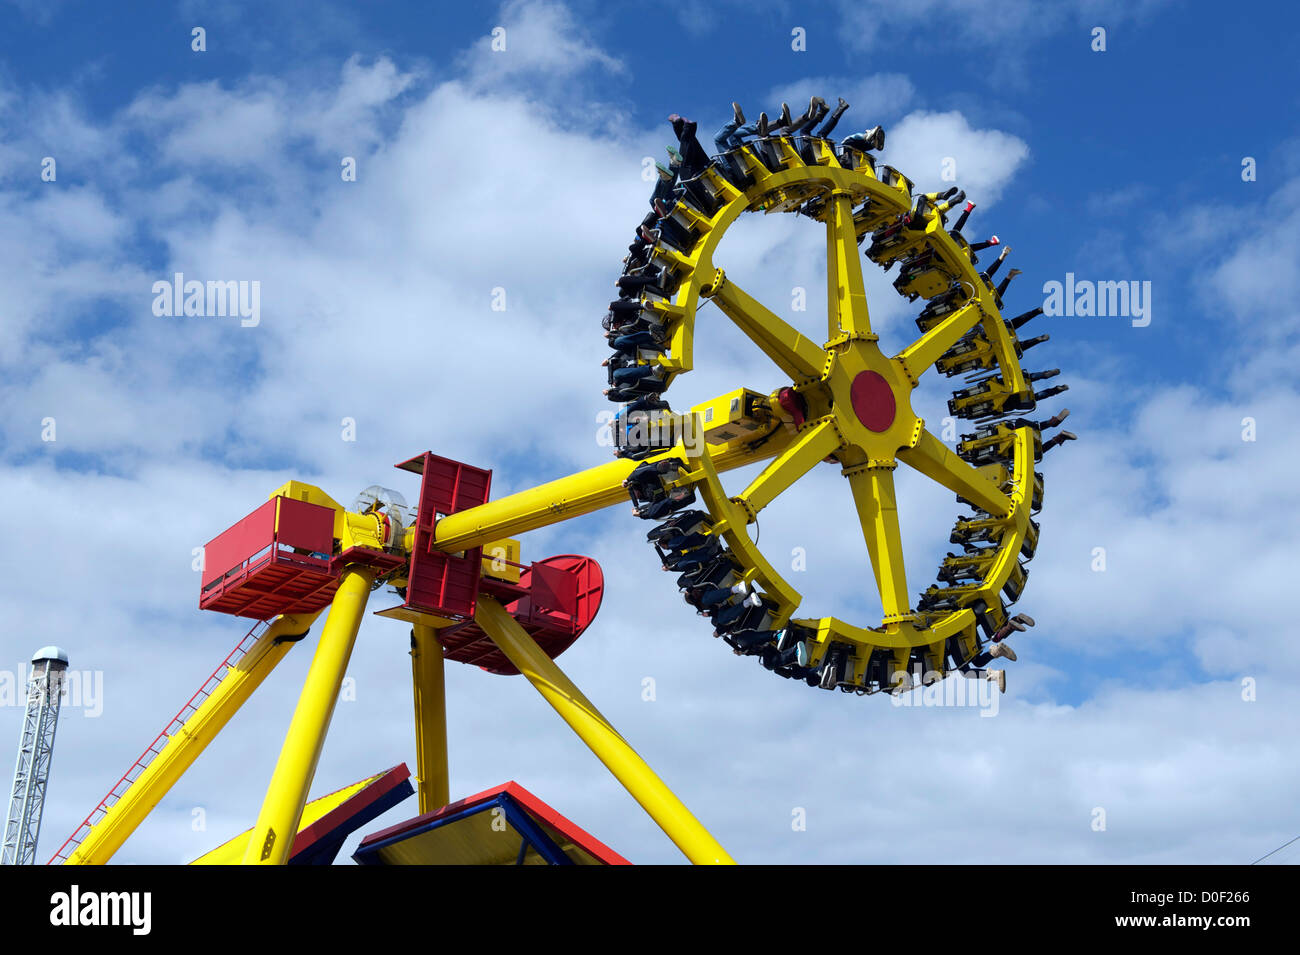 d146aa142558 Flip flop ride at Flamingo land resort near Pickering in North yorkshire uk